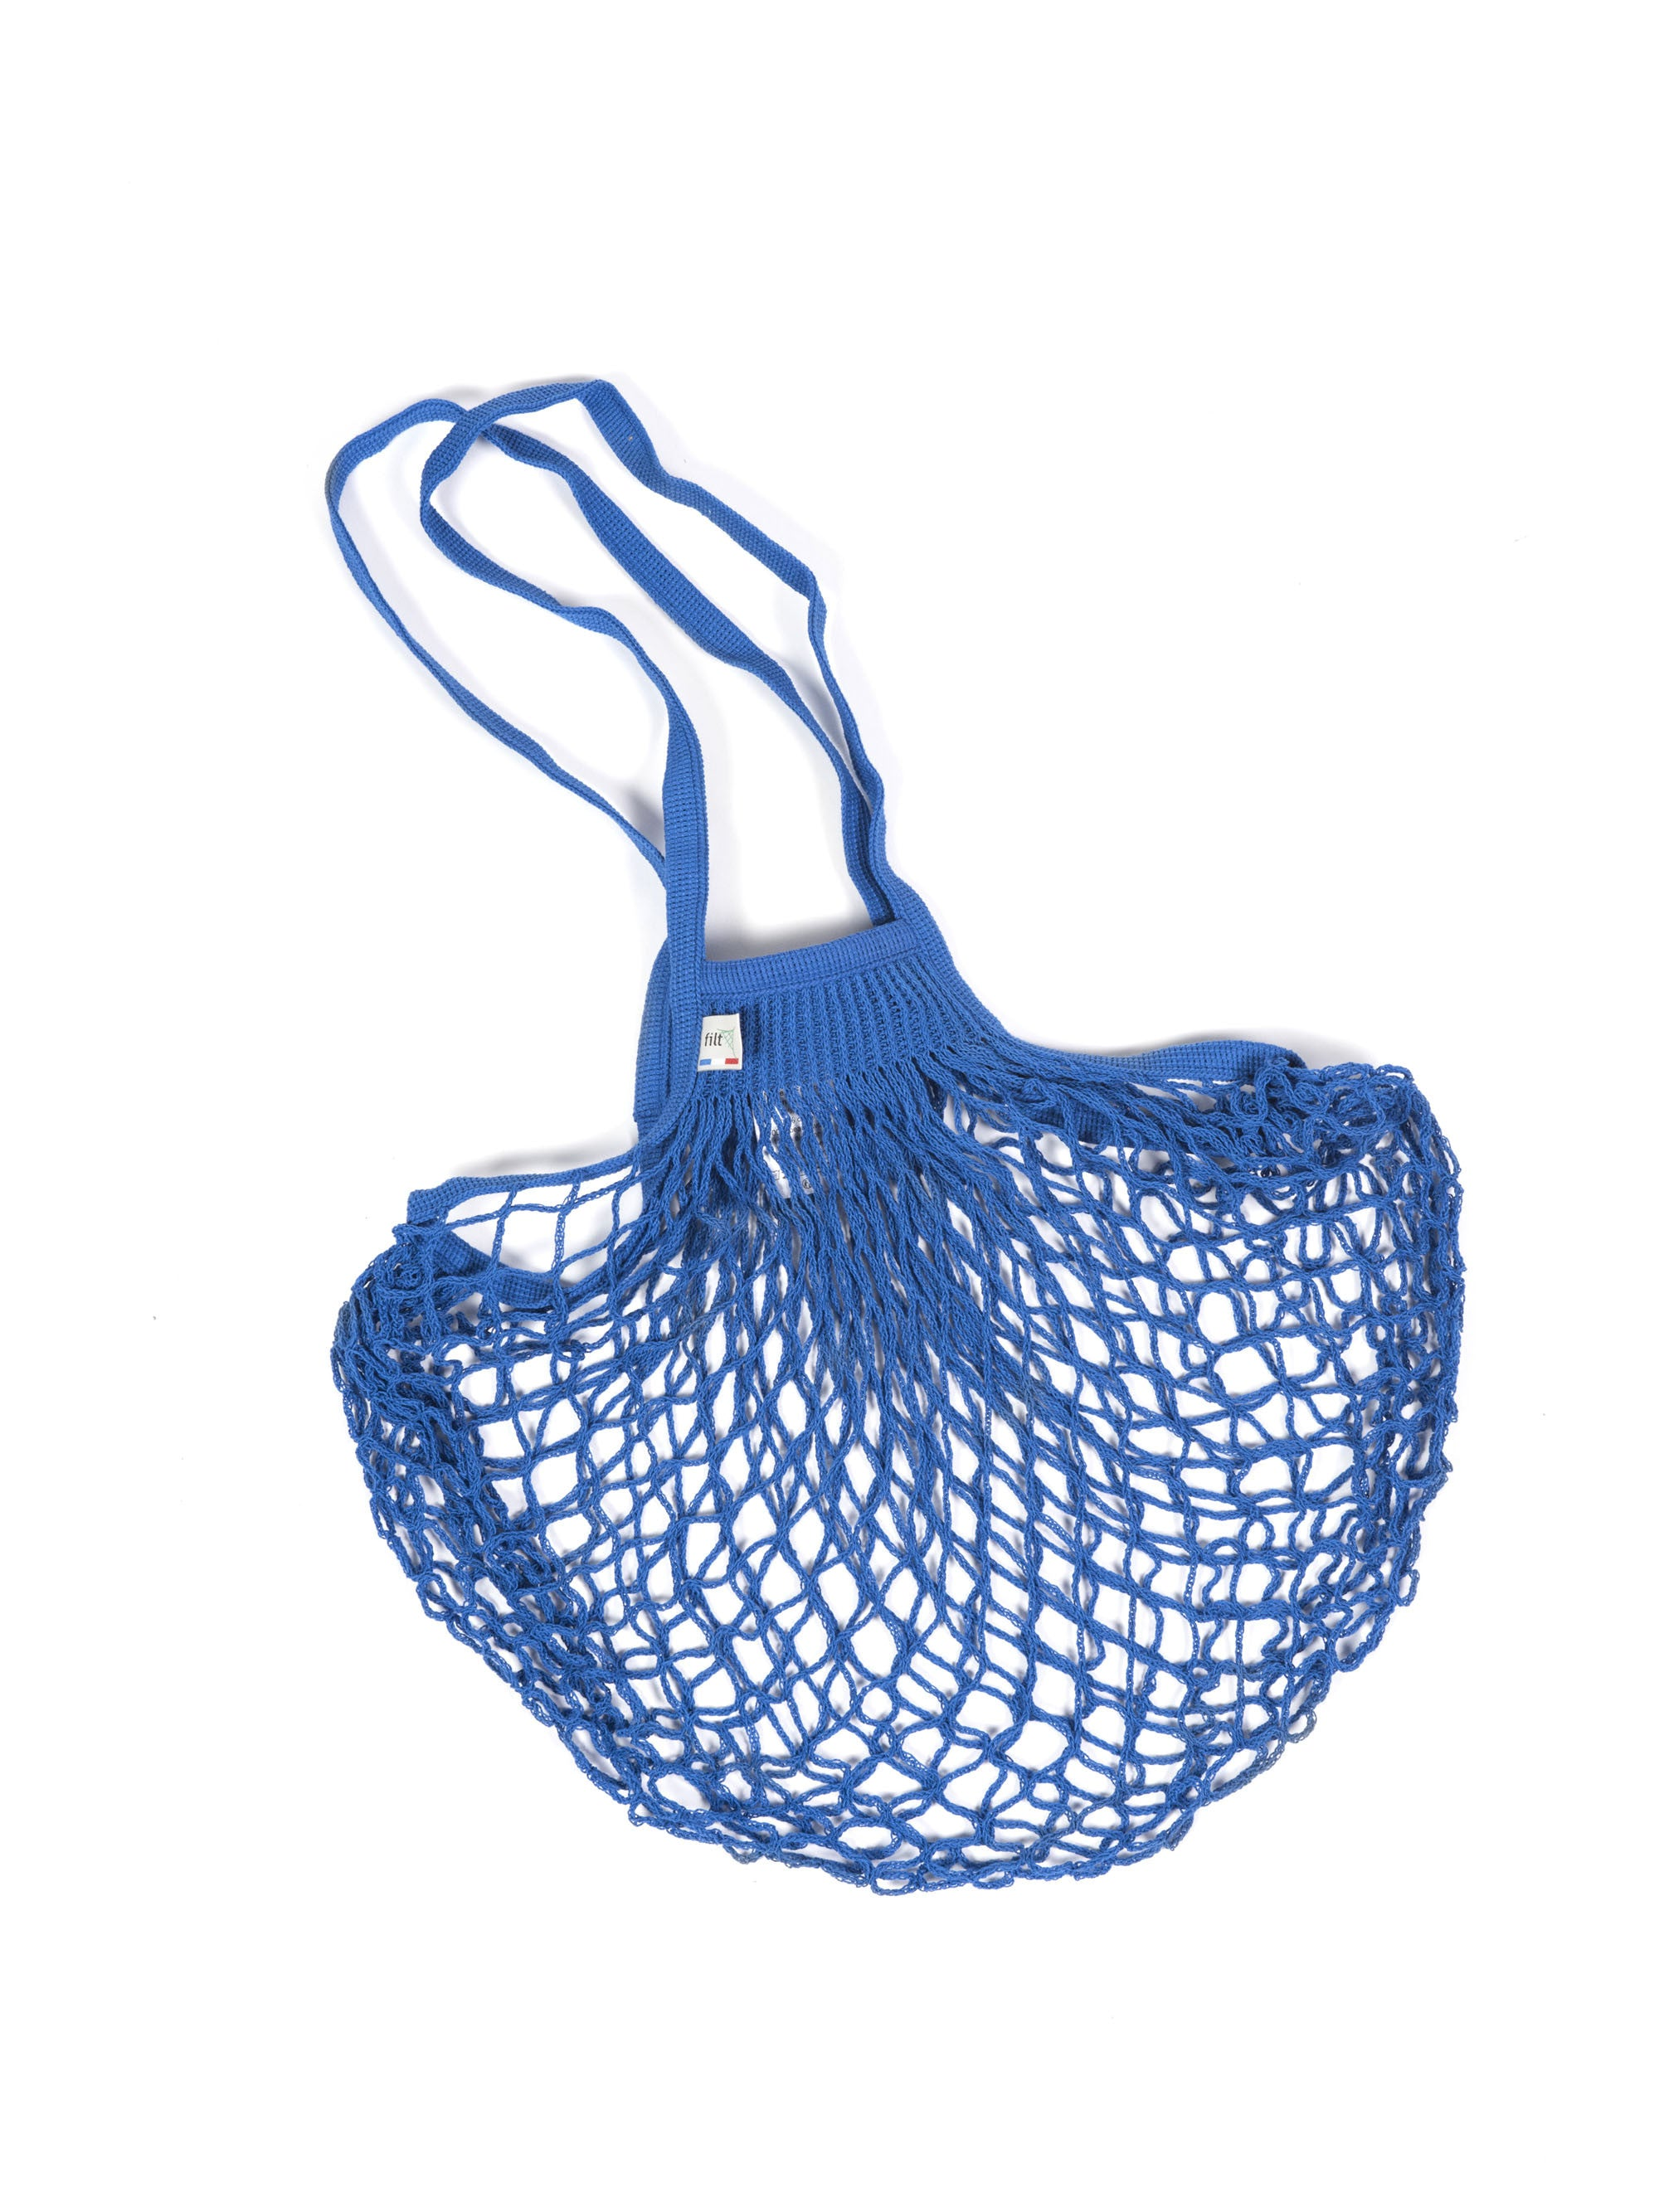 Filt Medium Bag in Bright Blue